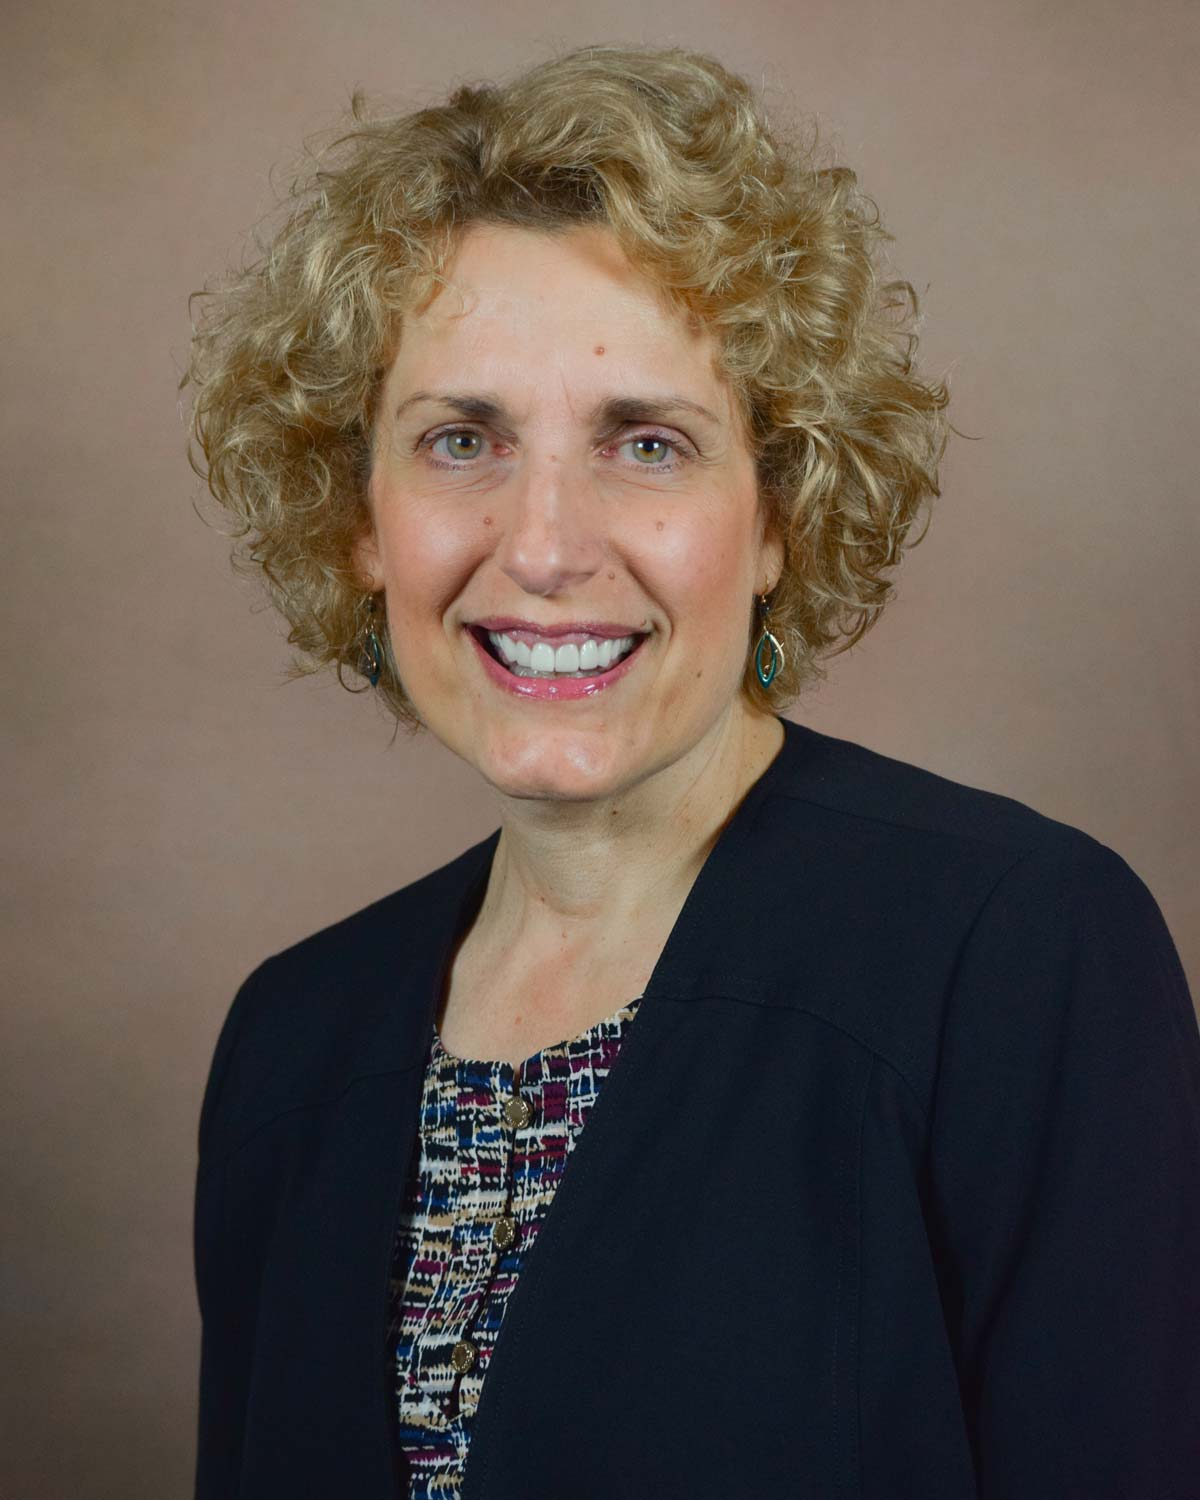 Professional headshot of Joanne Jones, MBA